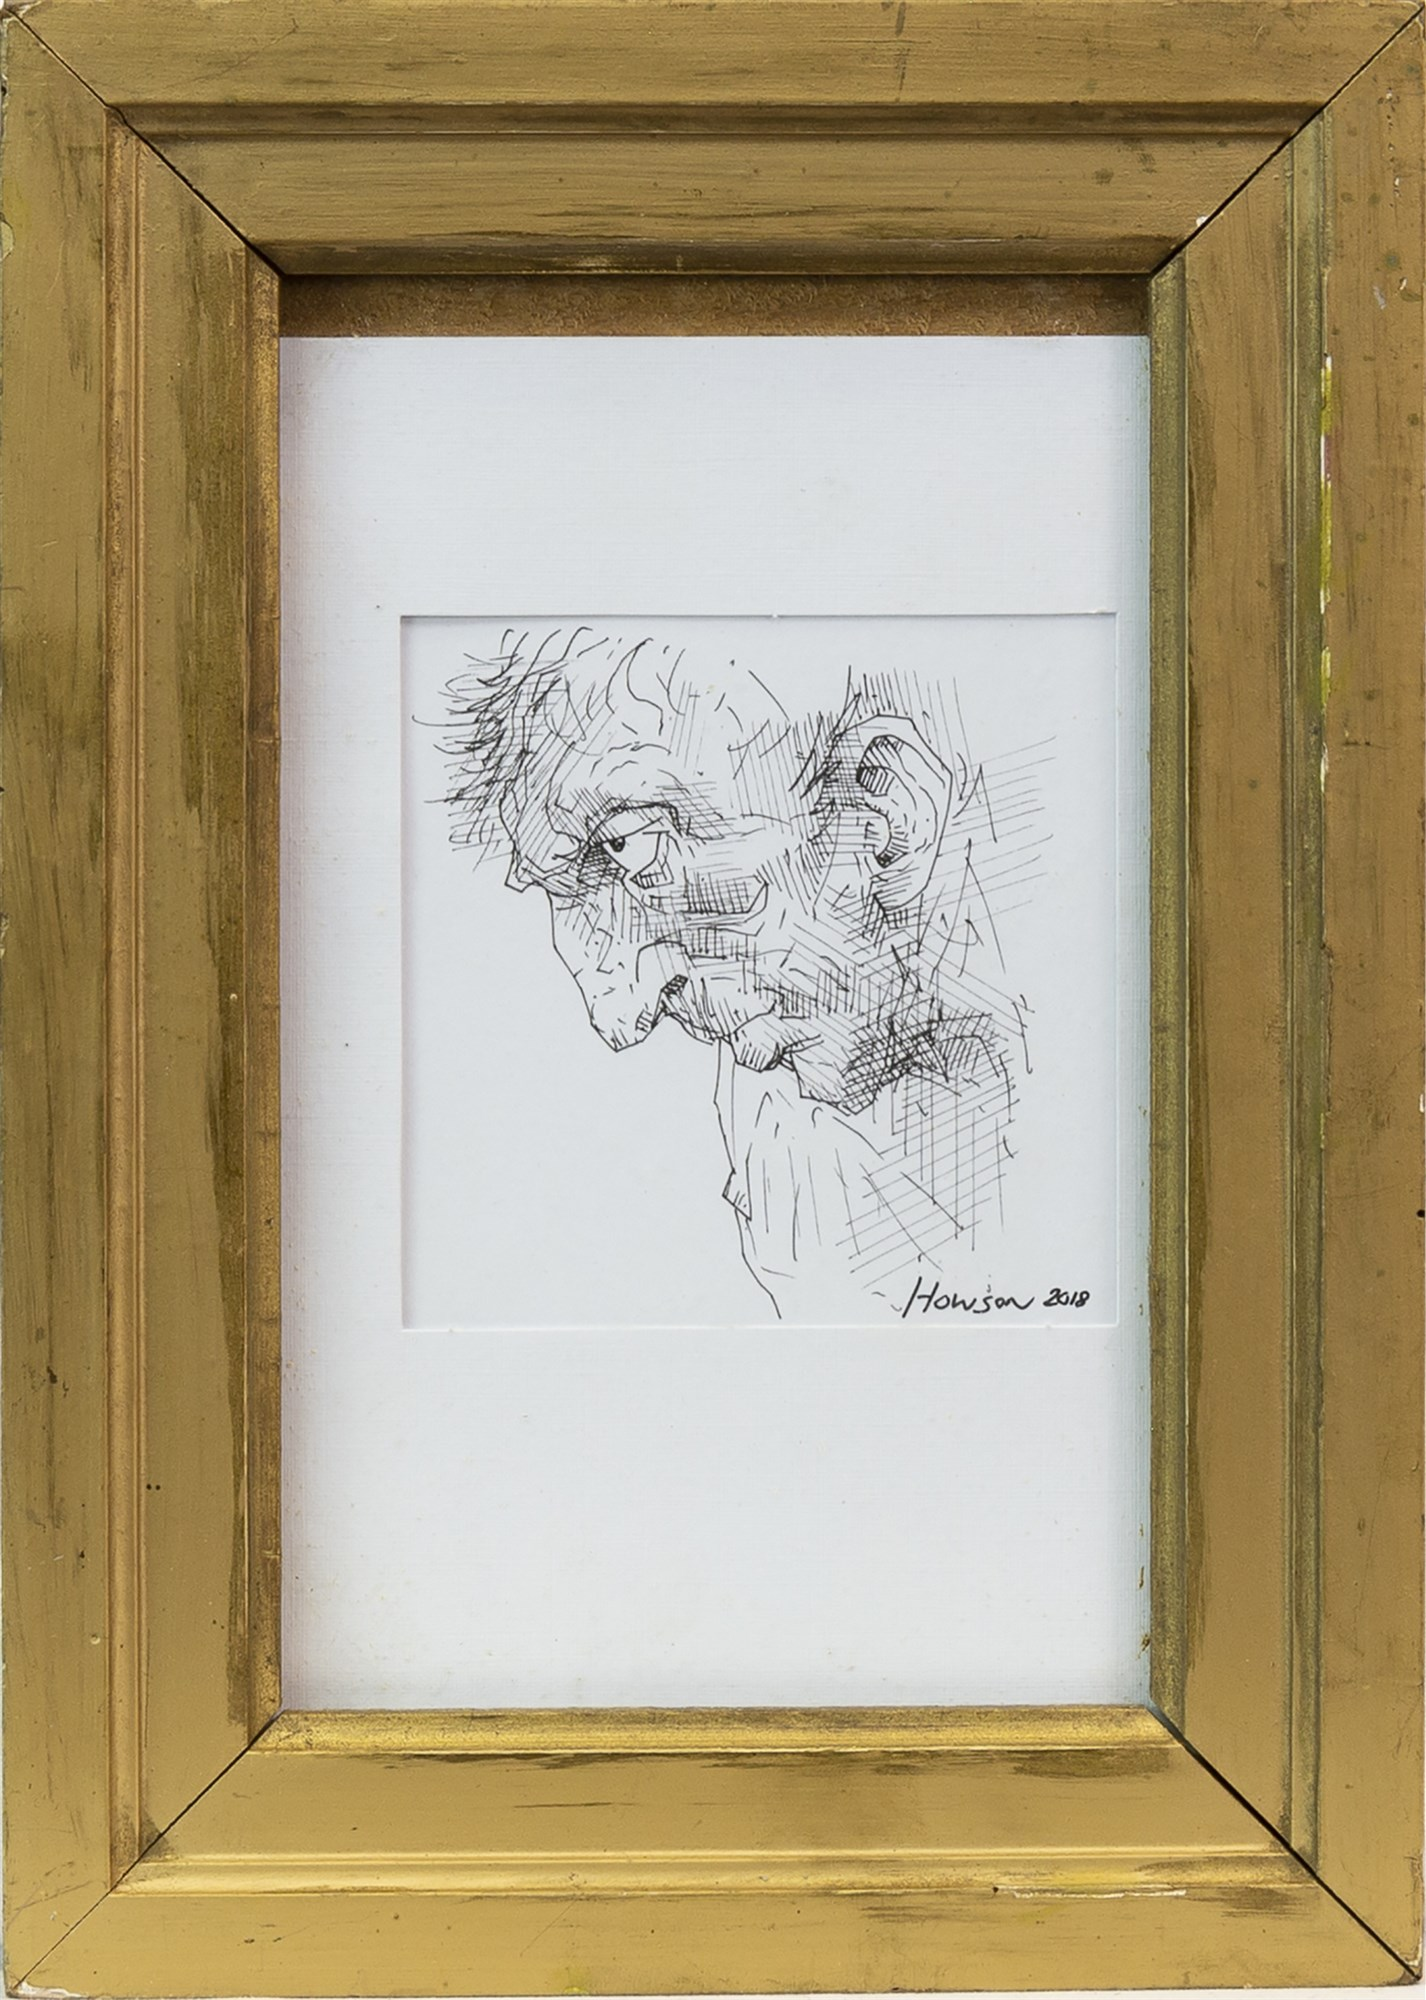 Lot 20 - PORTRAIT OF A MAN, AN INK SKETCH BY PETER HOWSON